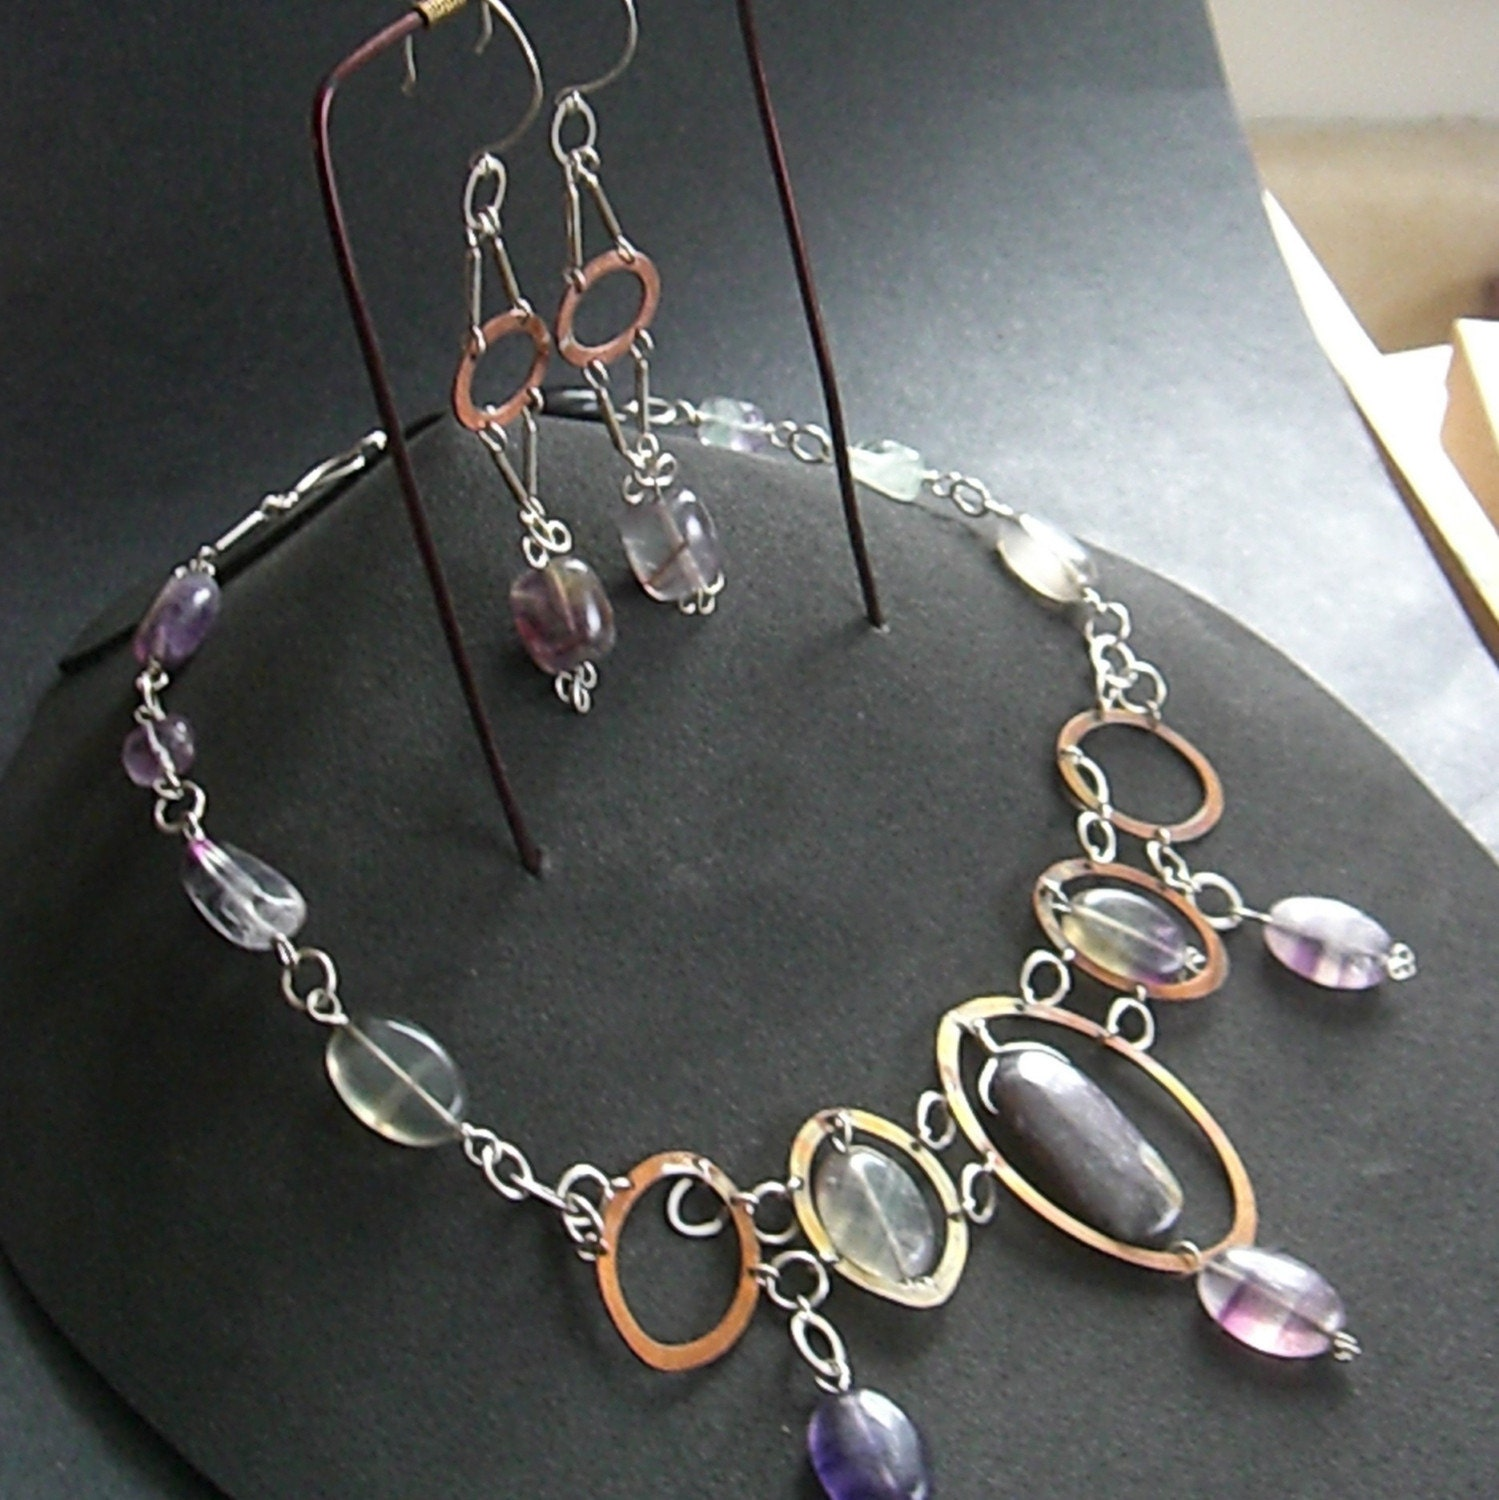 Necklace and Earring Display